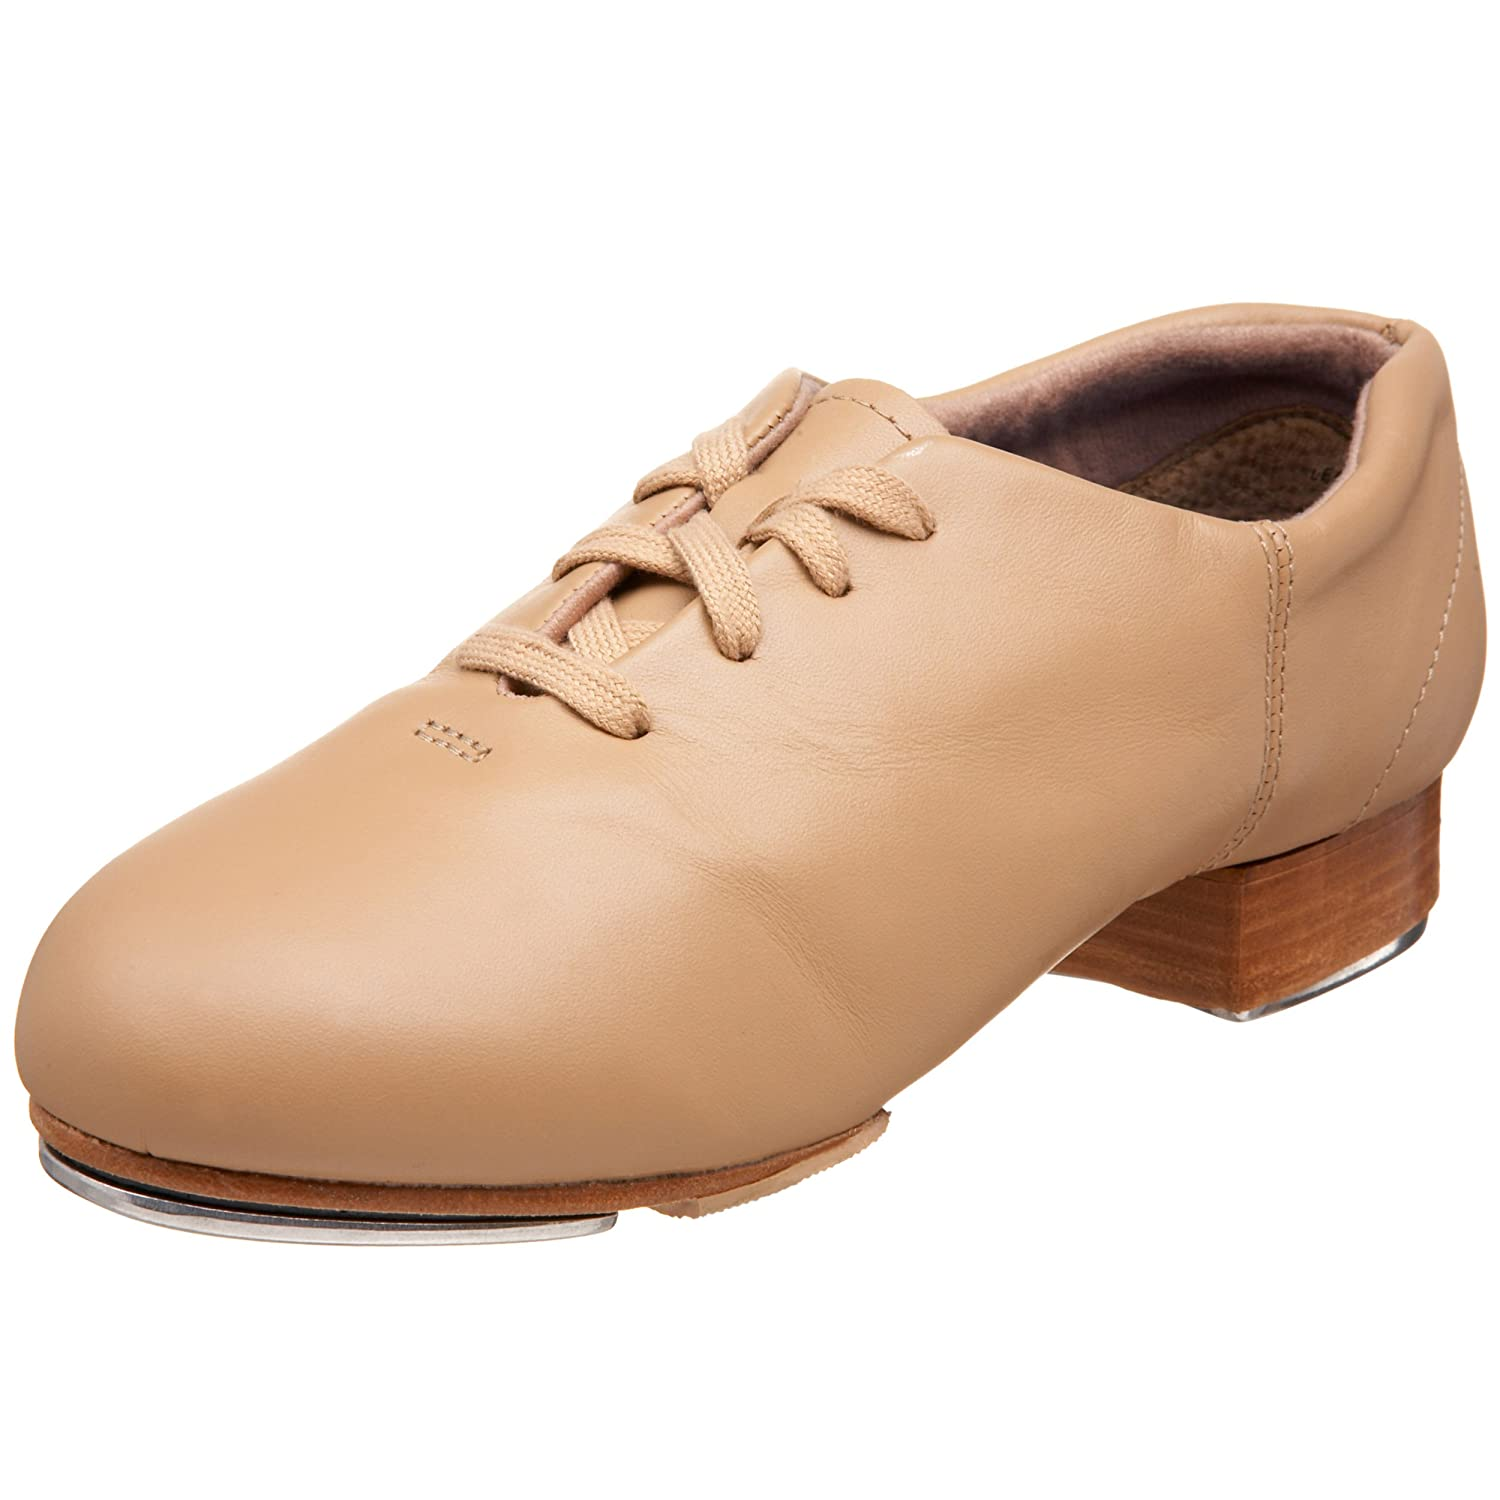 Capezio Women's CG16 Flex Mastr Tap Shoe B002CO320C 13 W US|Caramel